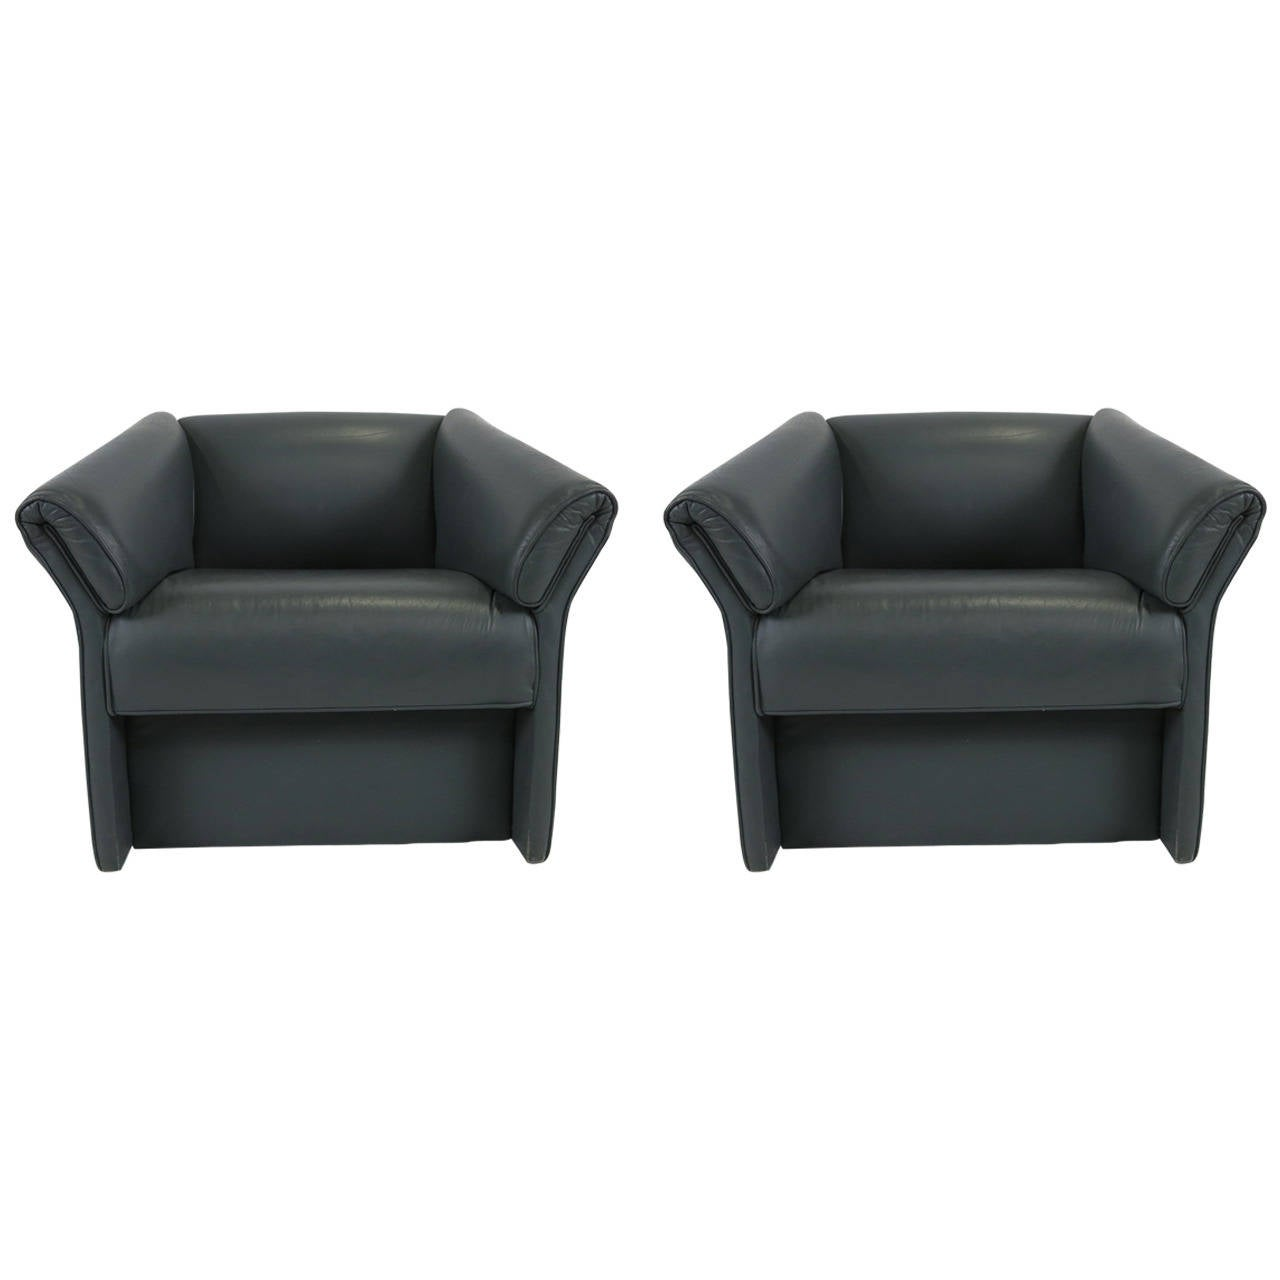 Pair of Grey Leather Modern Lounge Chairs